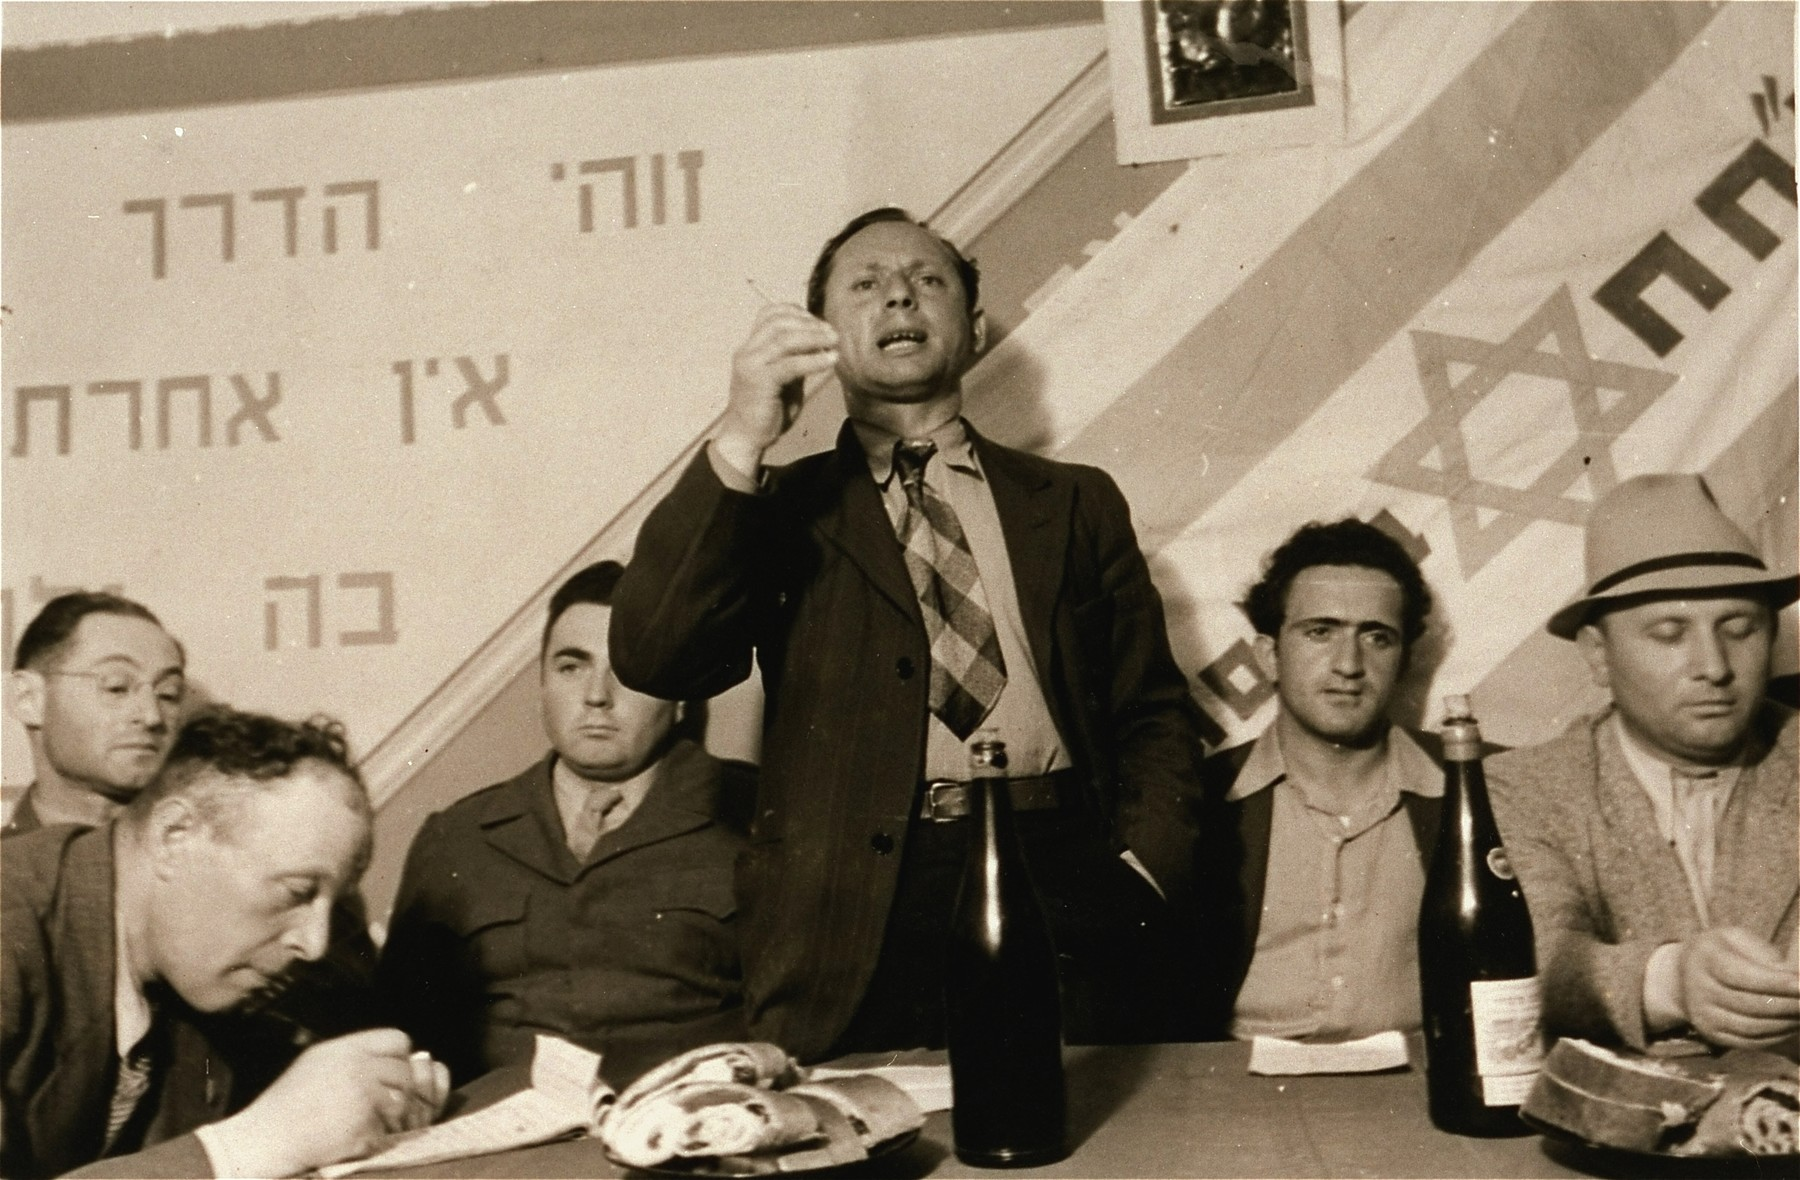 An unidentified man addresses the audience in a P.H.H. Zionist political meeting in the Zeilsheim displaced persons' camp.